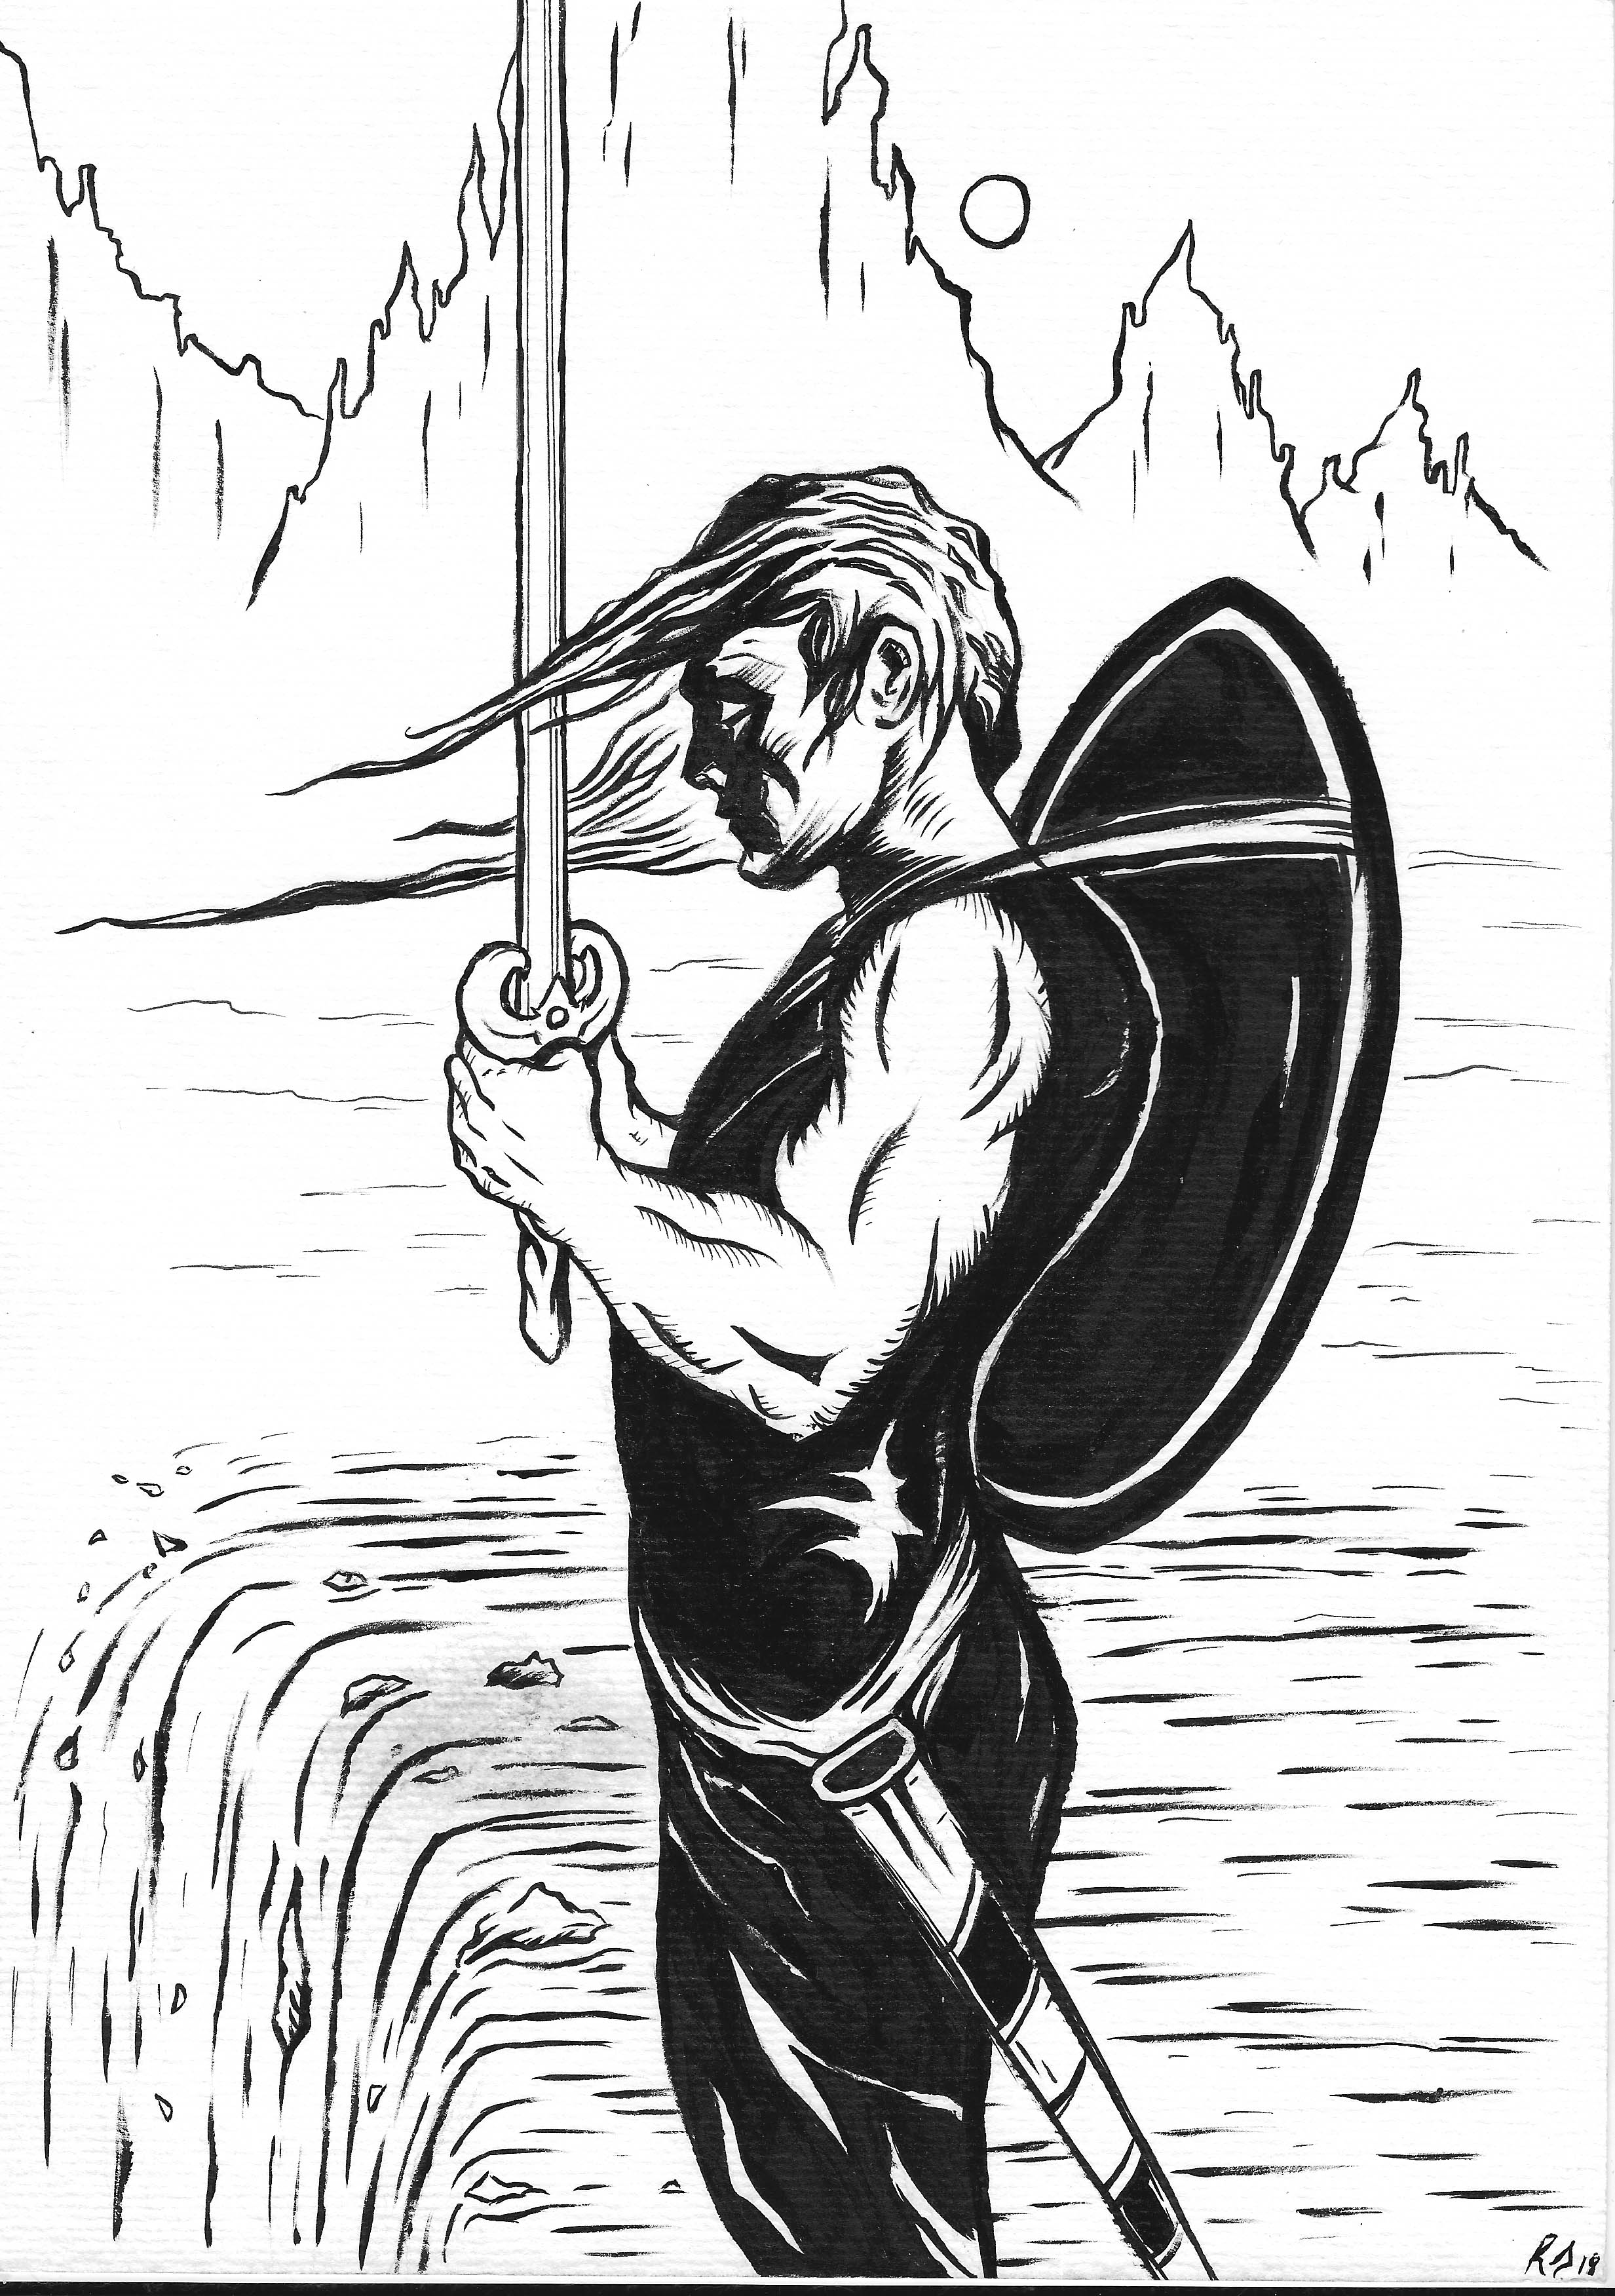 'True To His Path' My Ink Illustration of my warrior character which I created travelling around Patagonia.